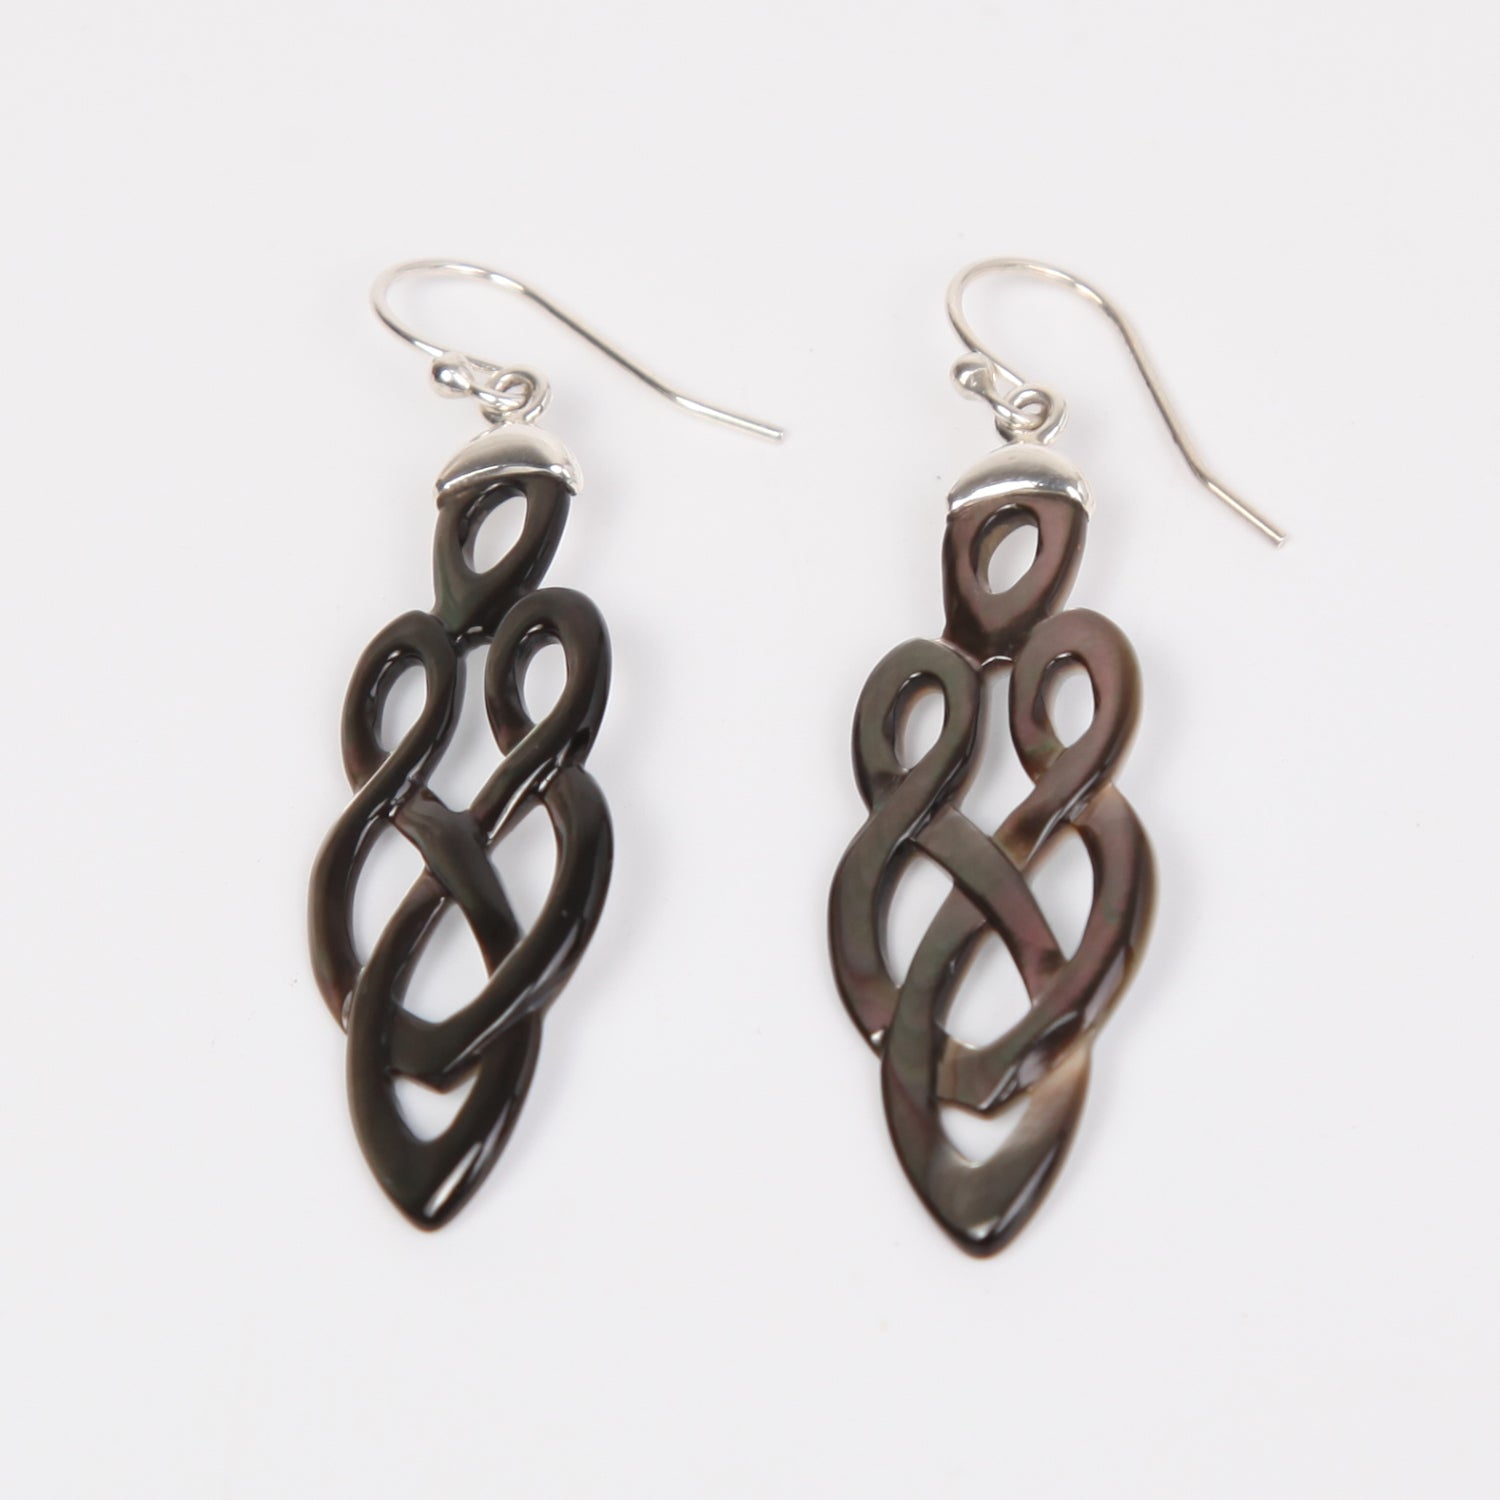 Swirl Mother of Pearl Earrings with Sterling Silver